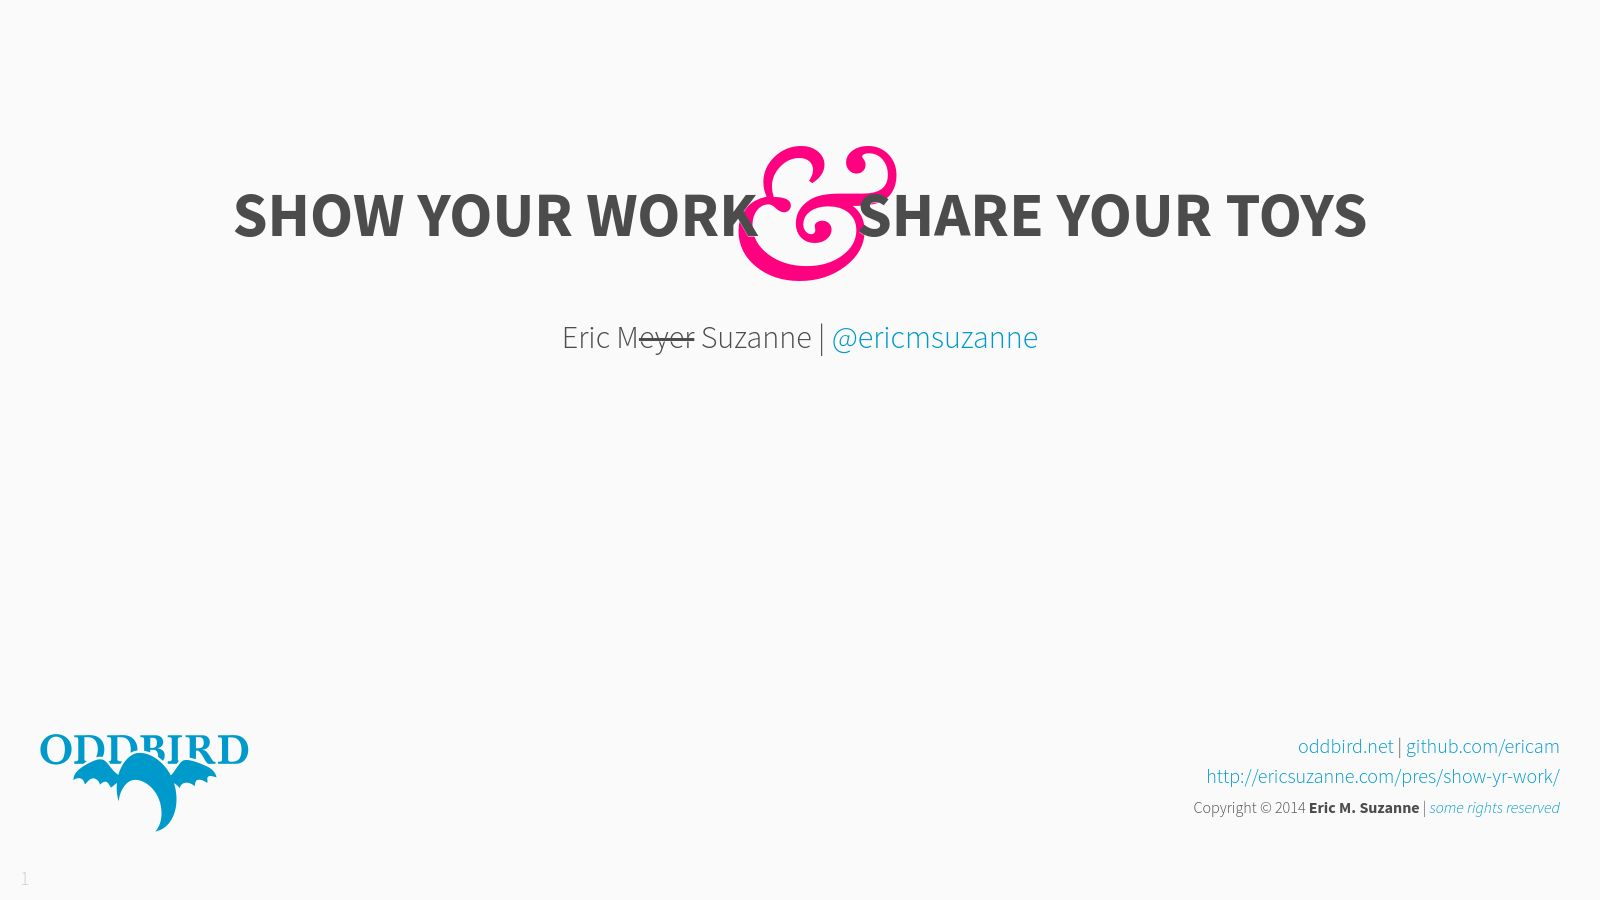 Show Your Work & Share Your Toys